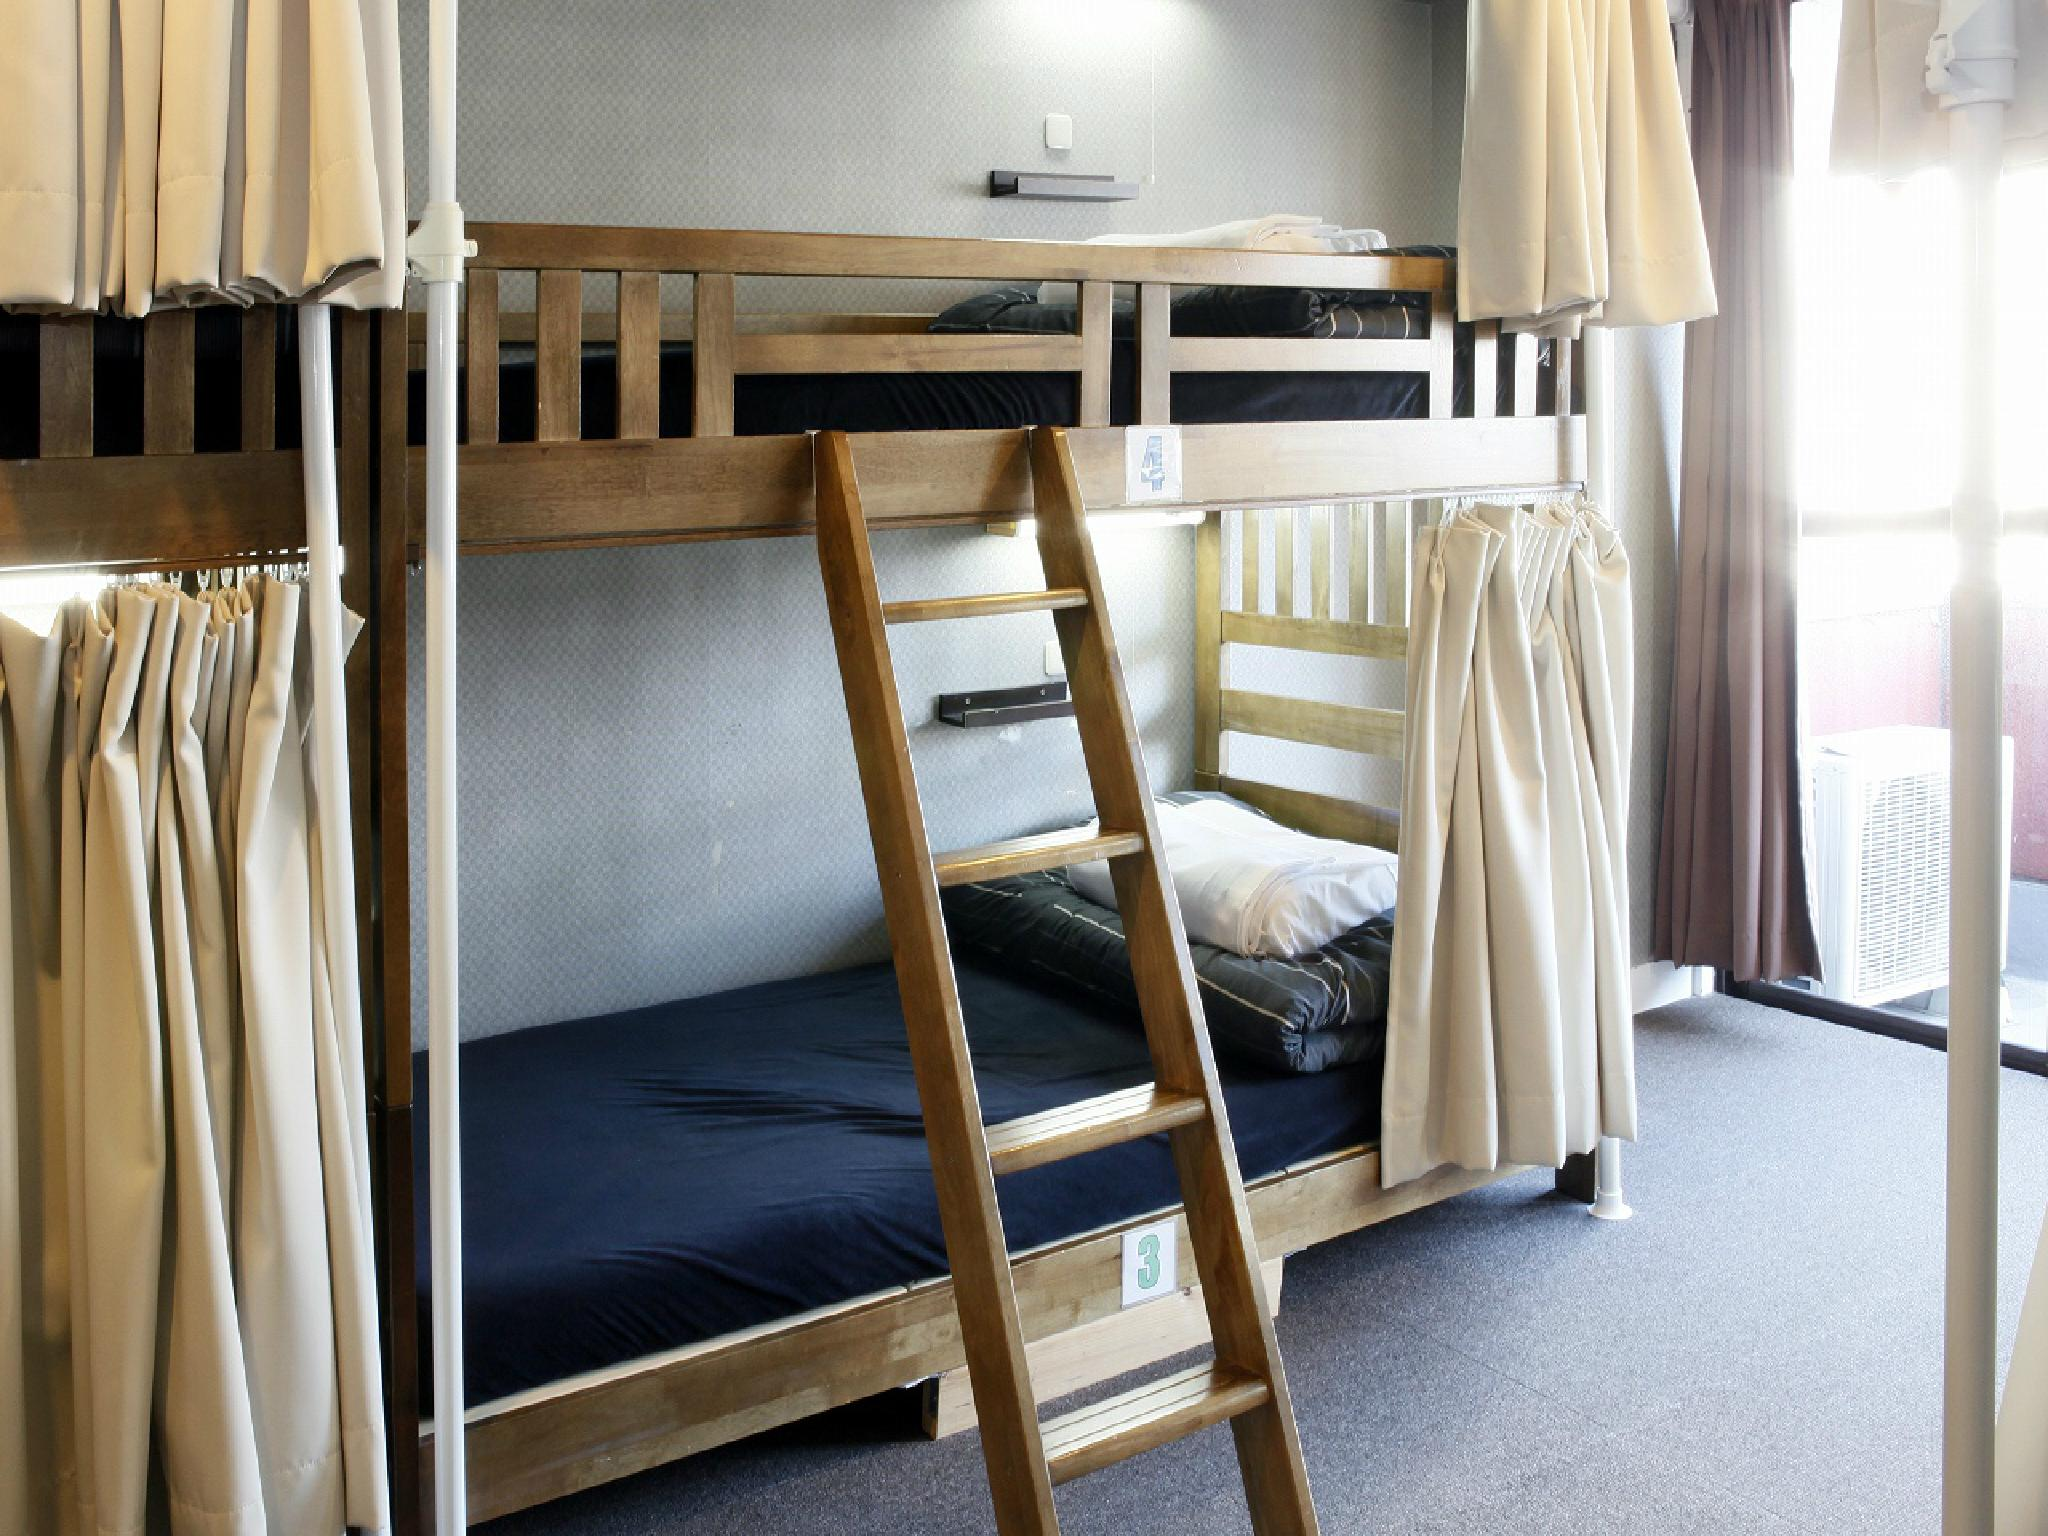 【2張床位】6人宿舍 - 需共用衛浴/男女混合 (2 People in 6-Bed Dormitory with Shared Bathroom - Mixed)